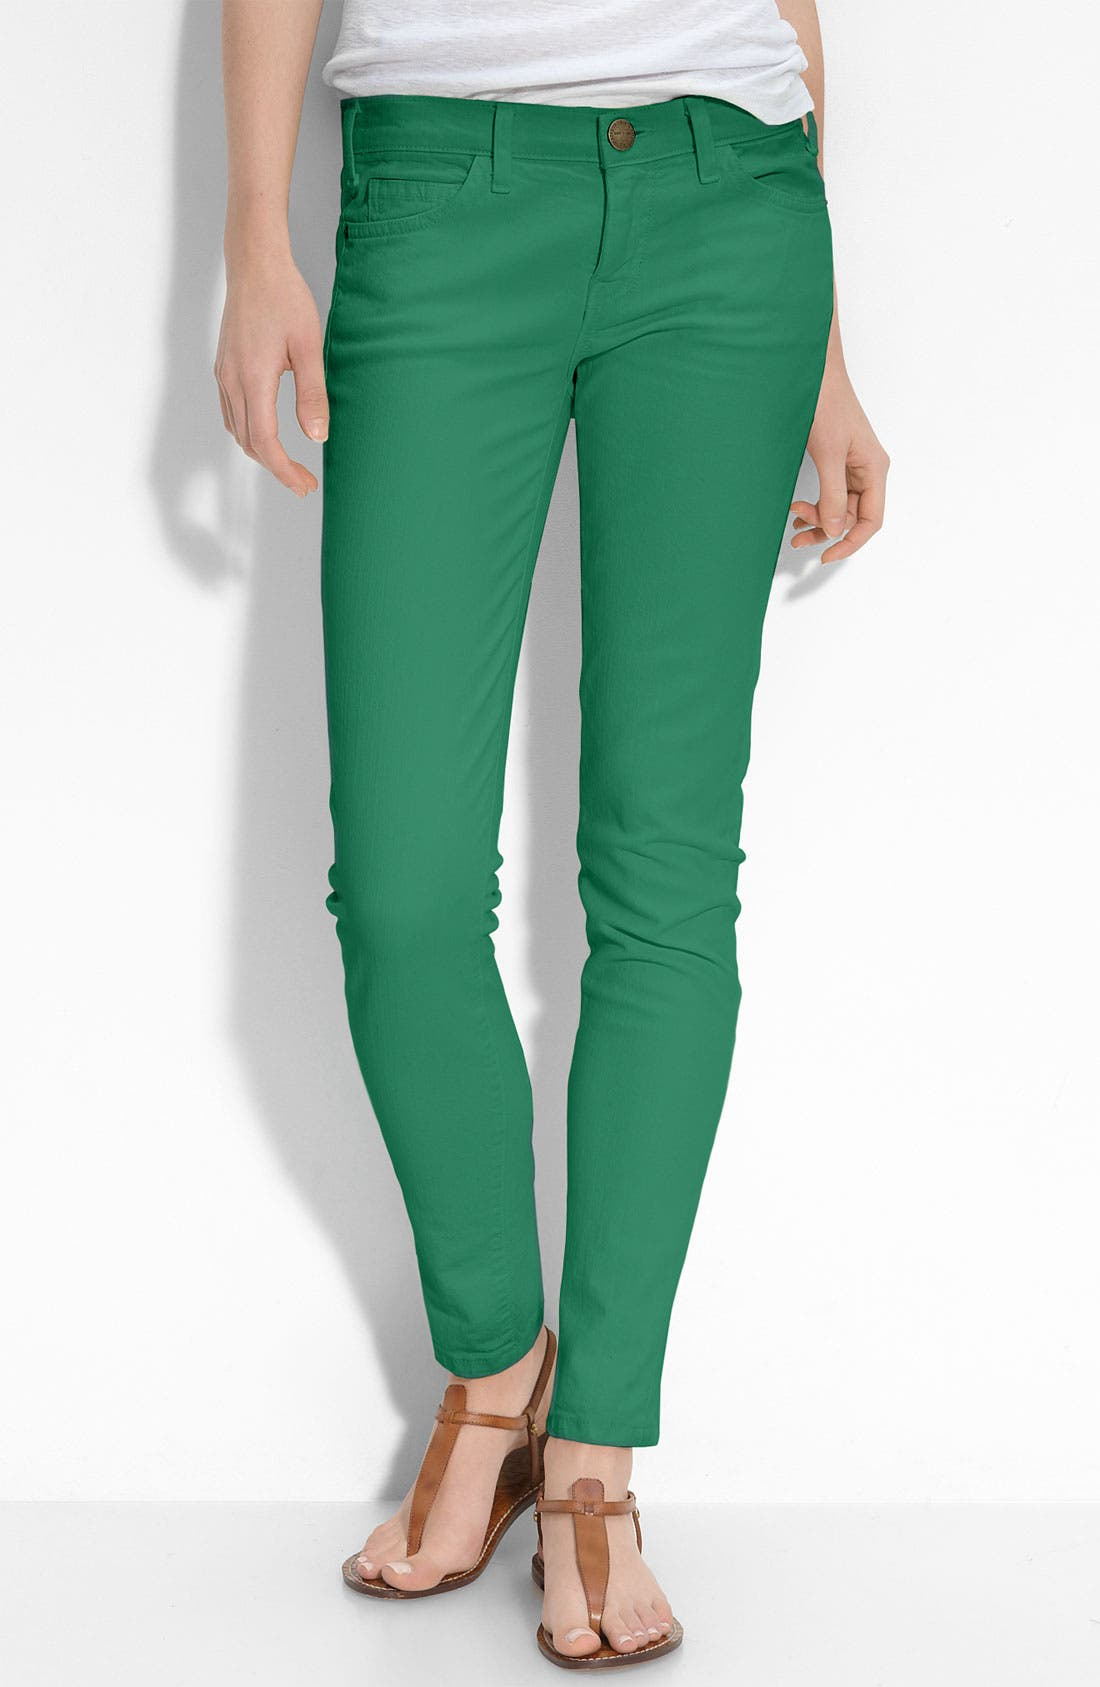 CURRENT/ELLIOTT Skinny Stretch Ankle Jeans, Main, color, 412